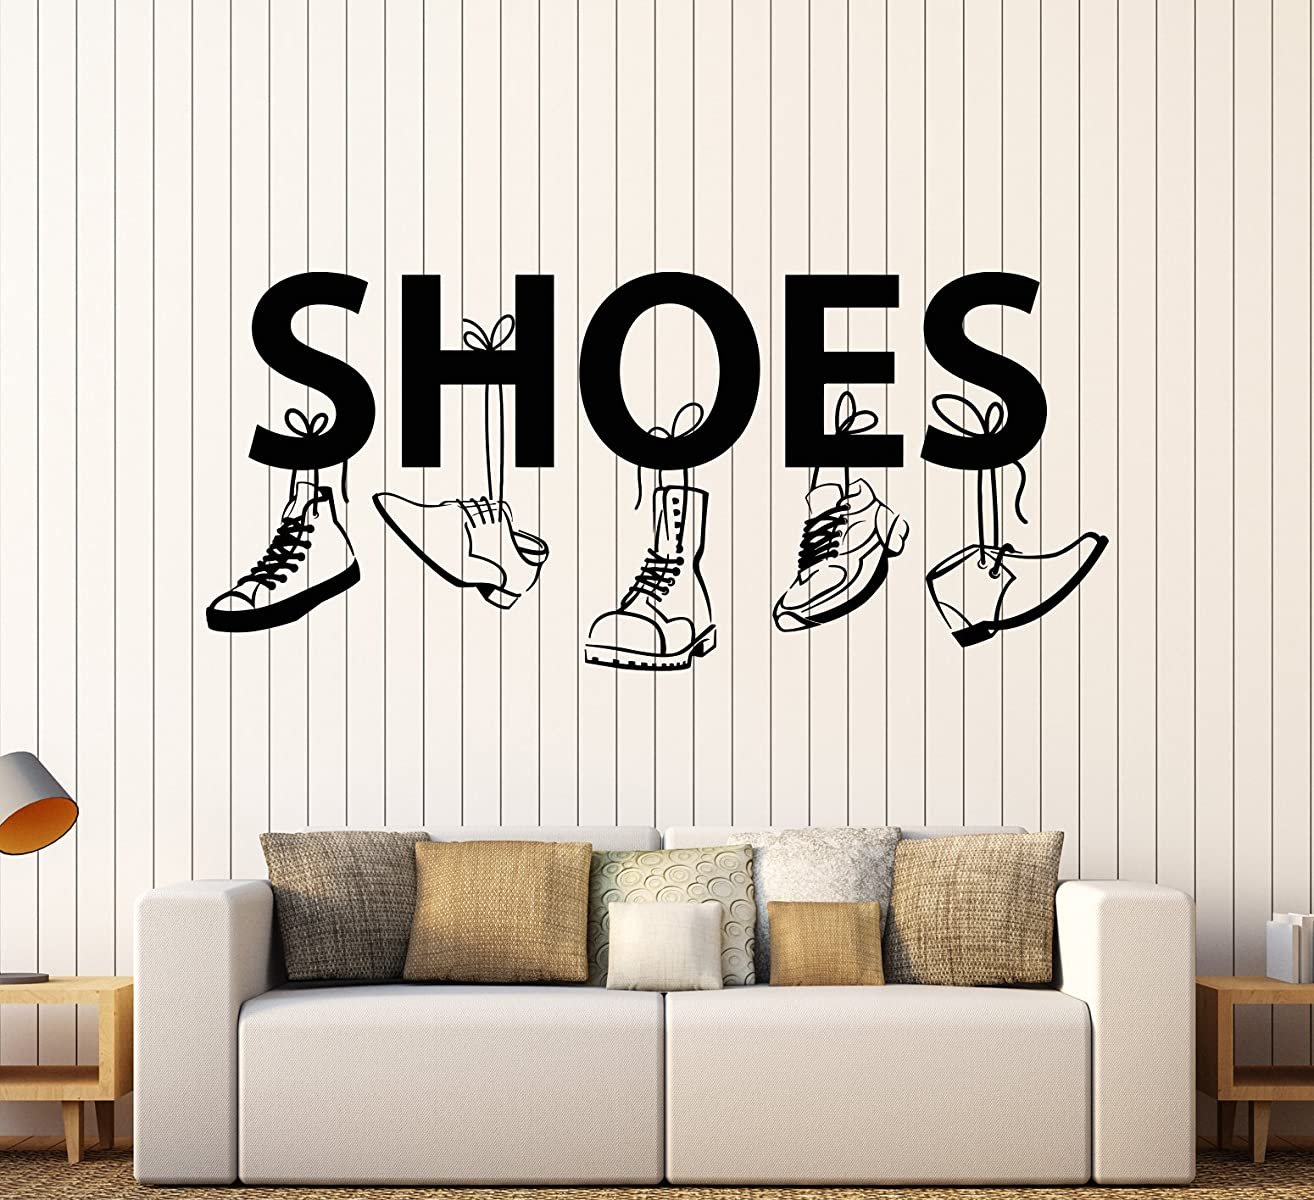 Vinyl Wall Decal Shoe Shop For Men Boot Sneakers Signboard Stickers Large Decor (1558ig)